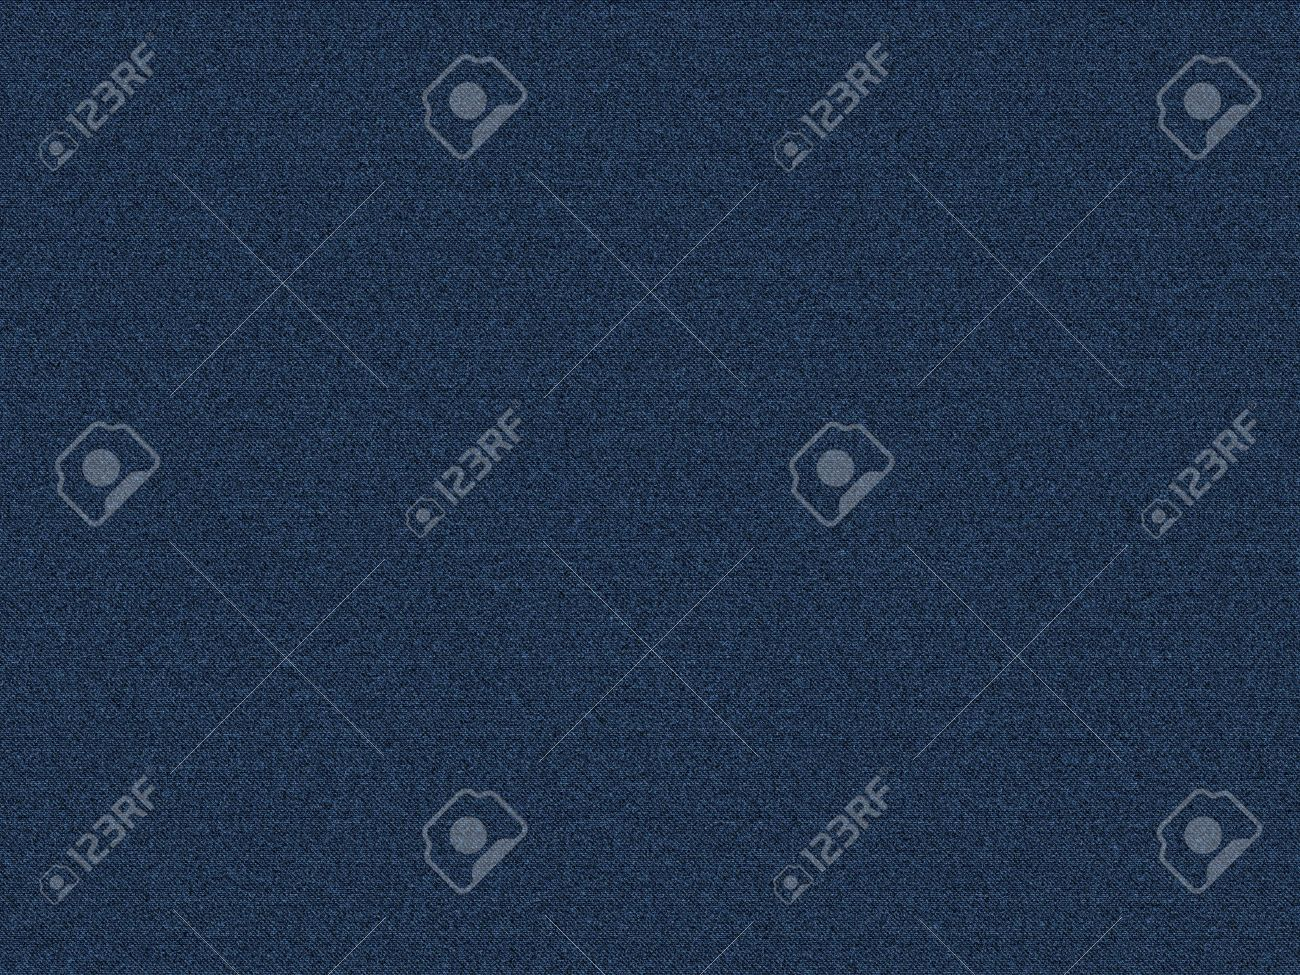 Texture denim. Smooth fabric without wrinkles. Realistic fabric pattern for all purposes Stock Photo - 7125740